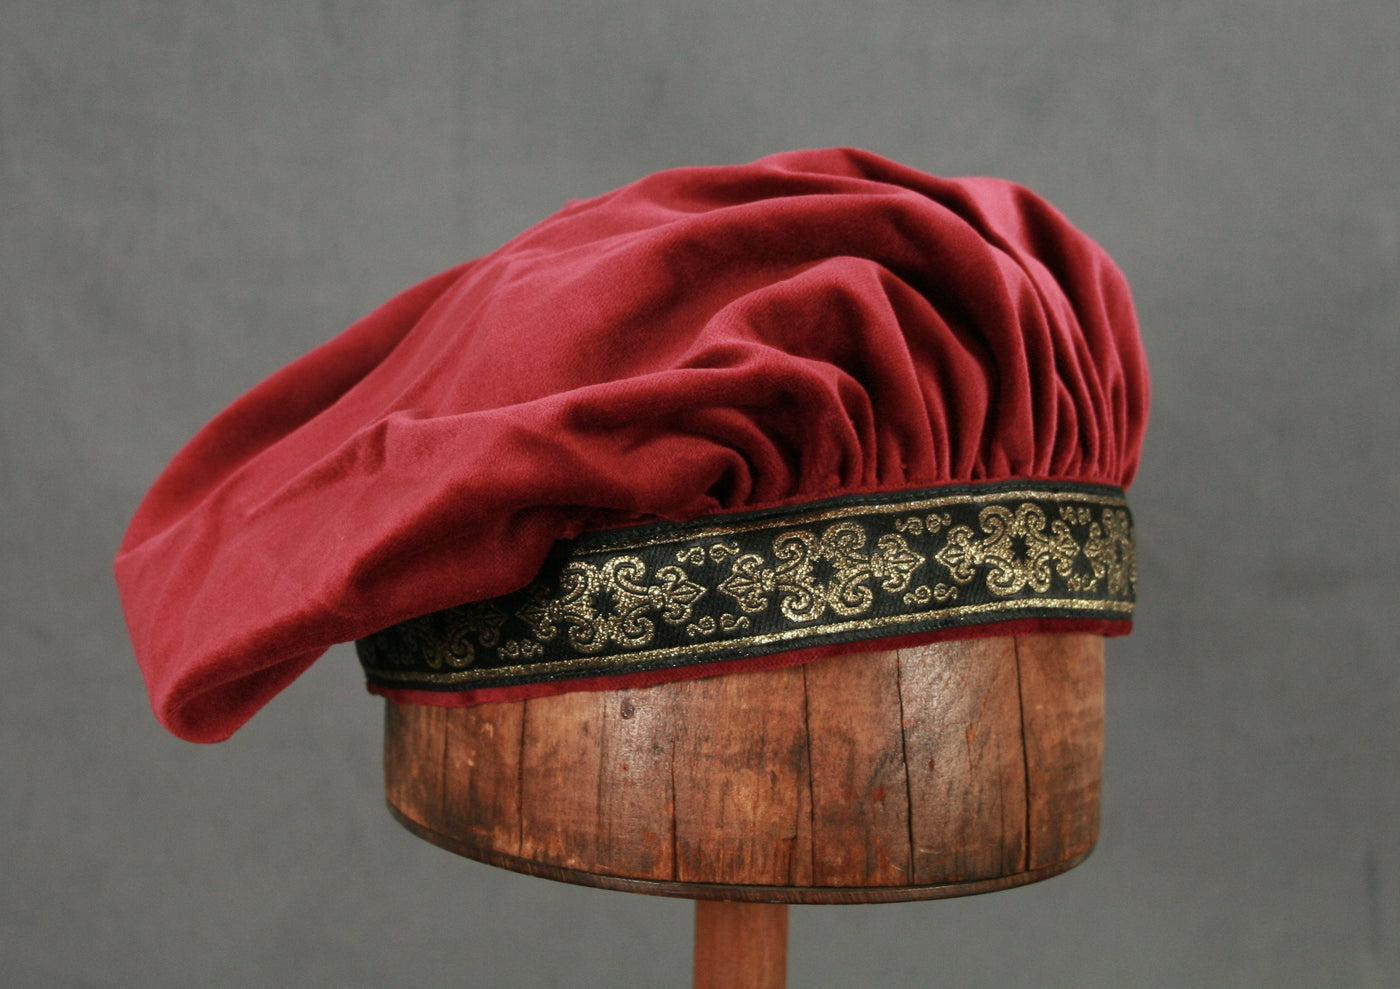 Cotton Velveteen Beret - Ruby Wine / Black-Gold - Tall Toad